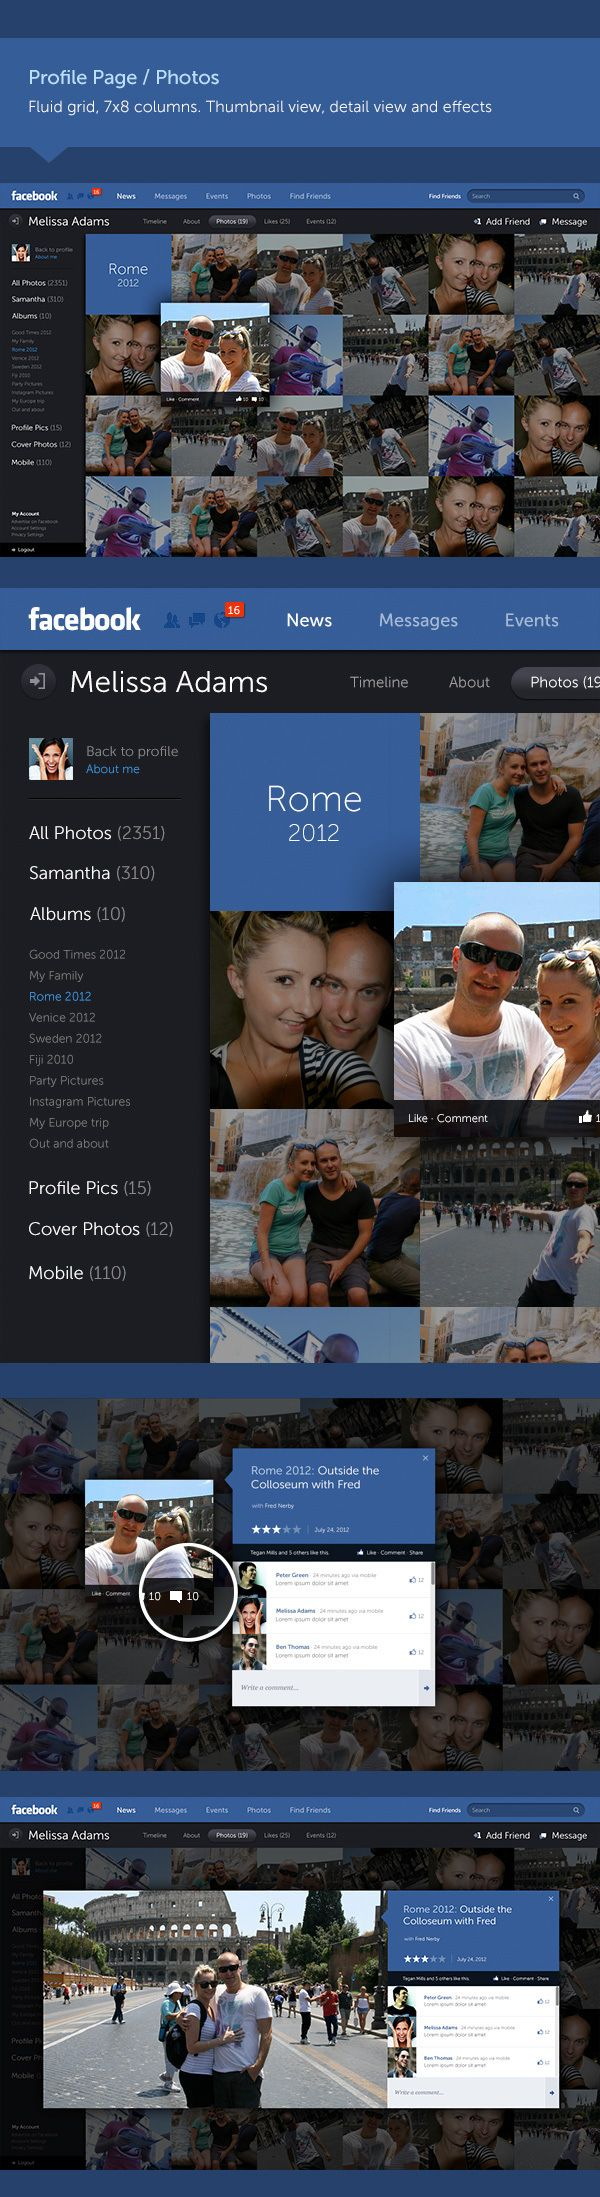 Profile page/photos - Facebook Redesign Concept by Fred Nerby #webdesign #web #website